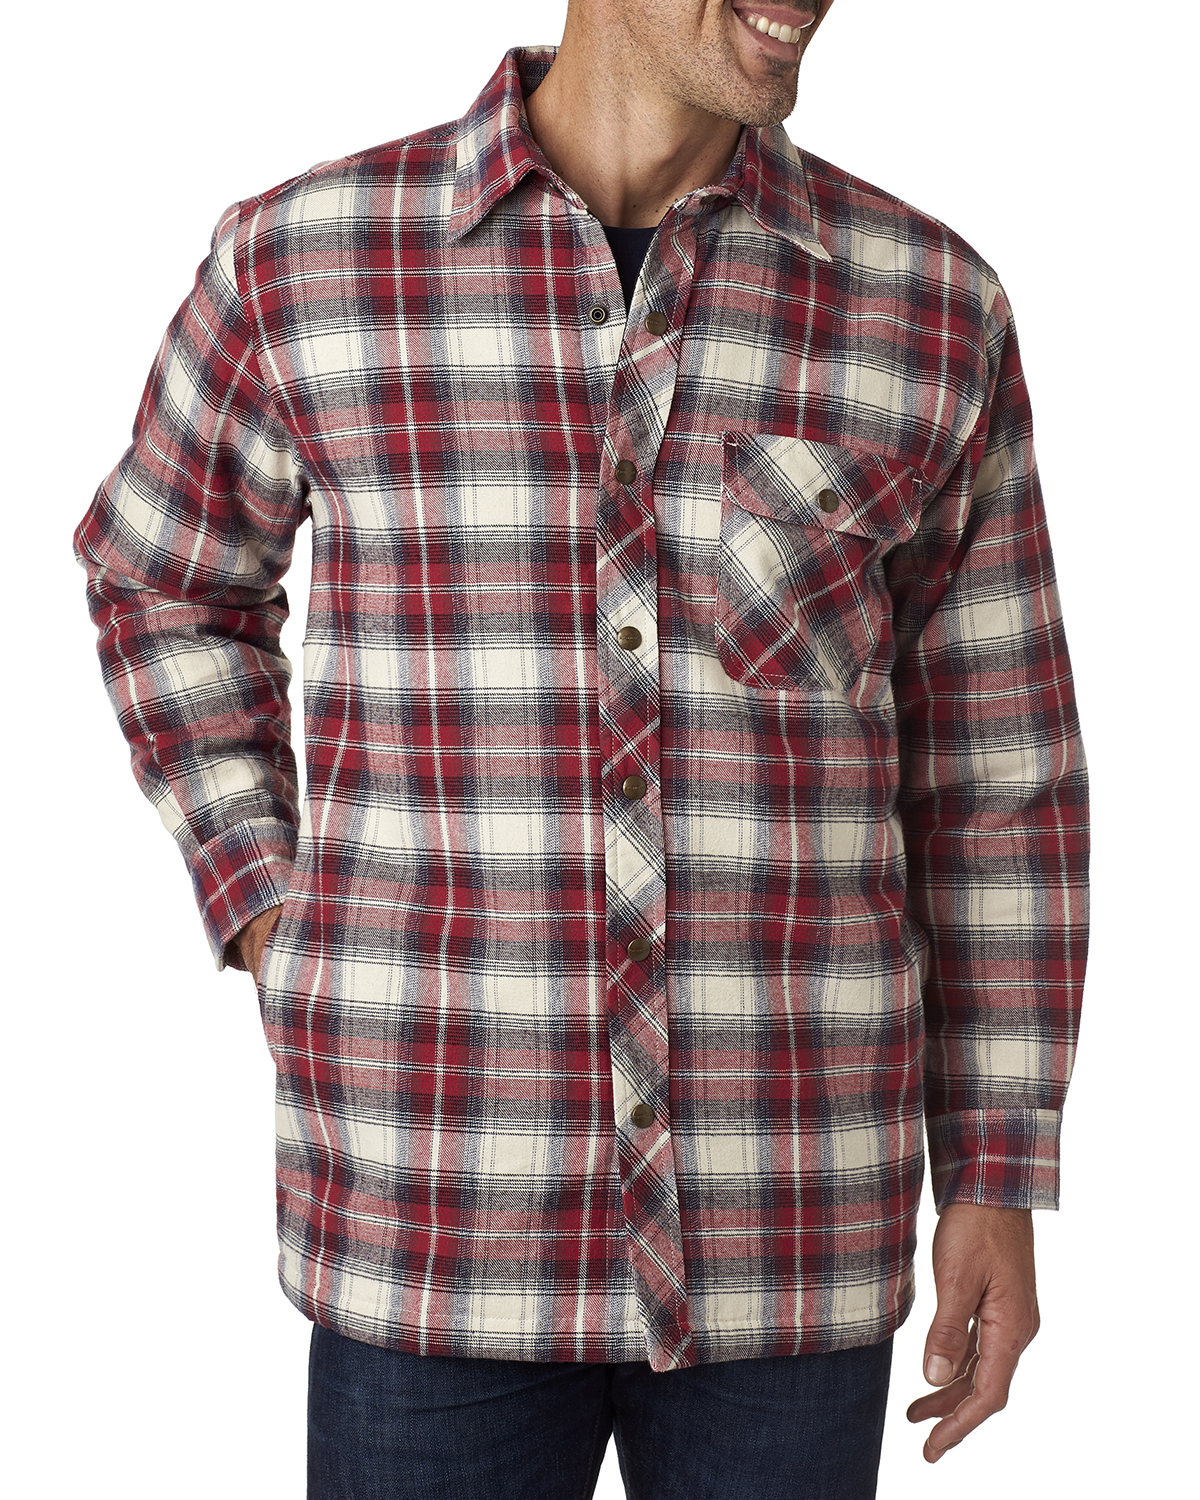 Backpacker BP7002 - Men's Flannel Shirt Jacket with Quilt Lining